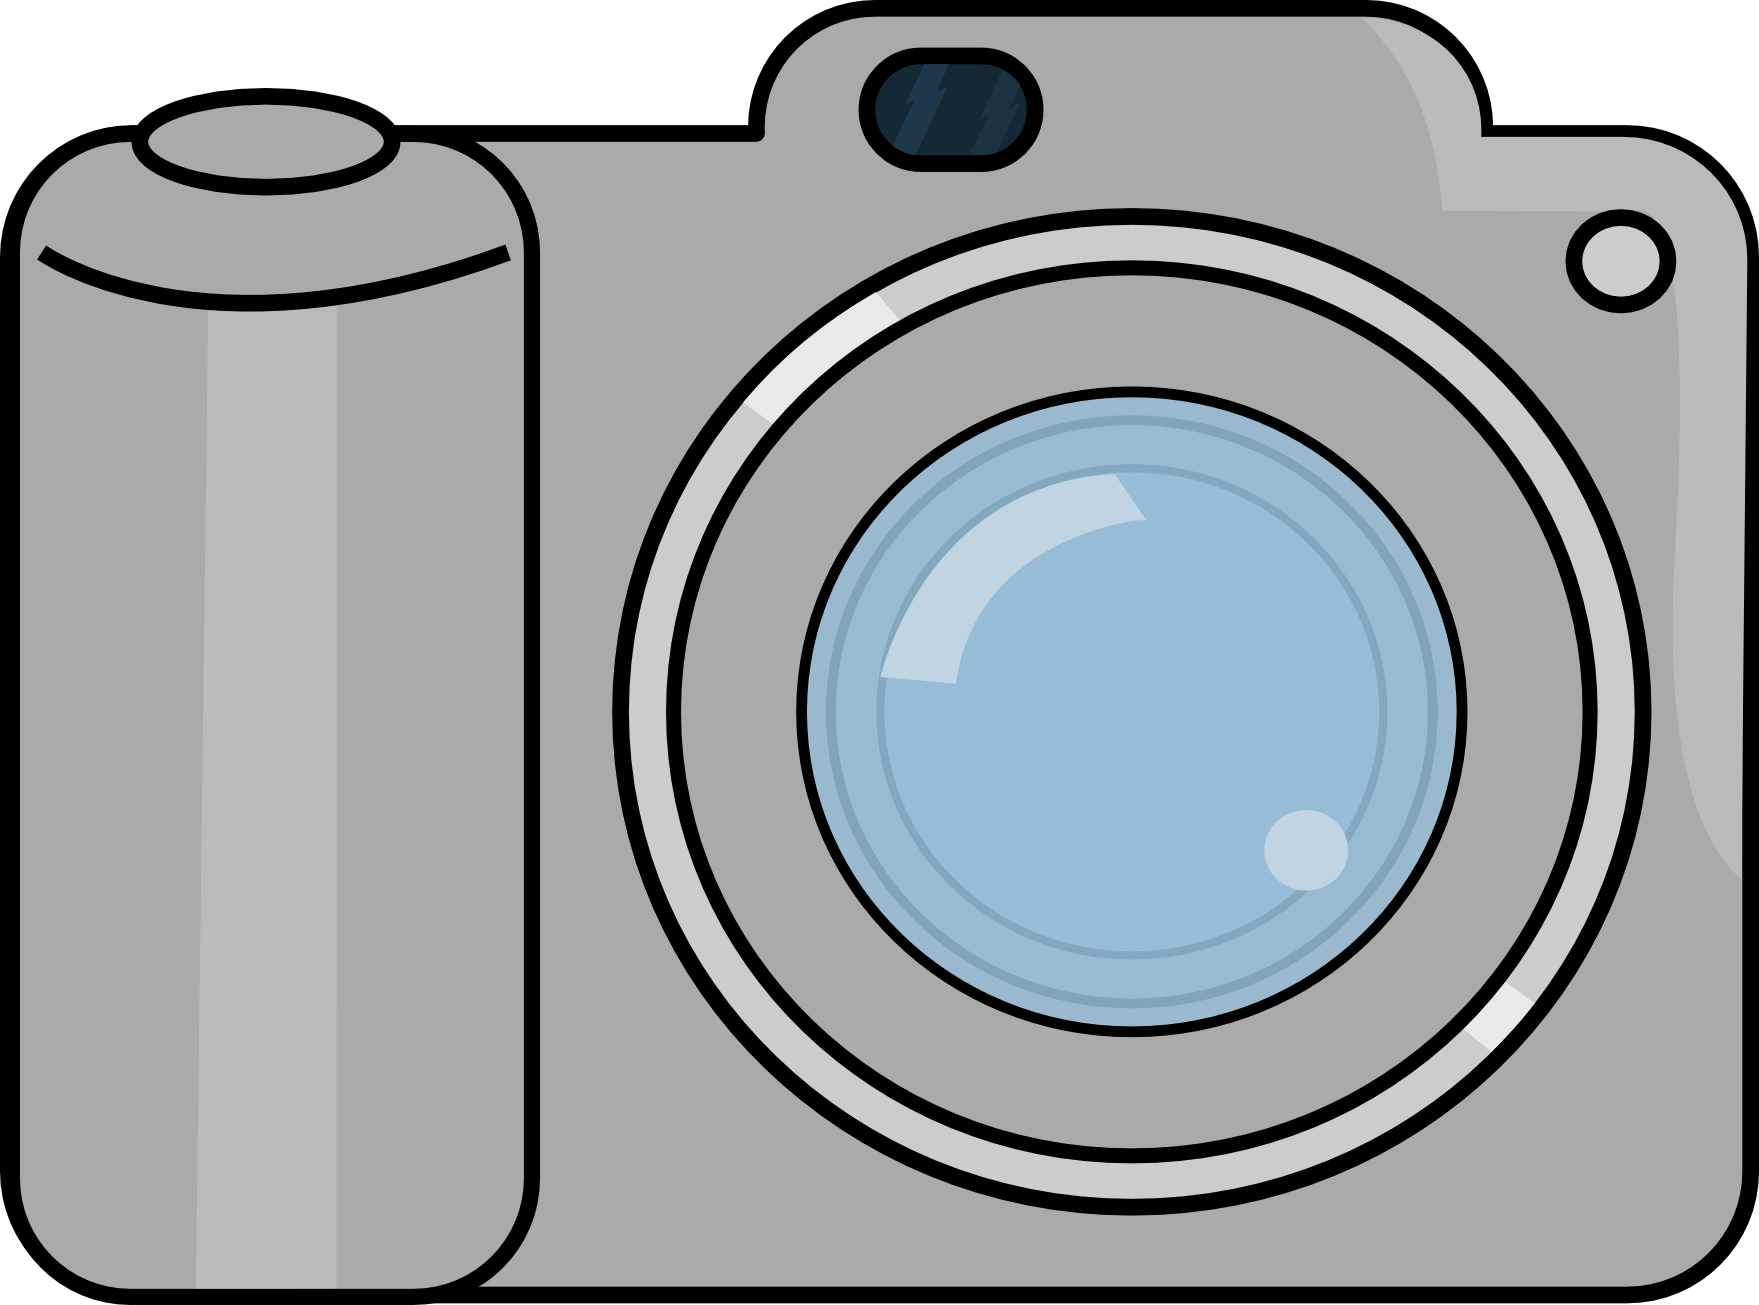 camera clipart u0026middot; digital clipart u0026middot; free digital photos